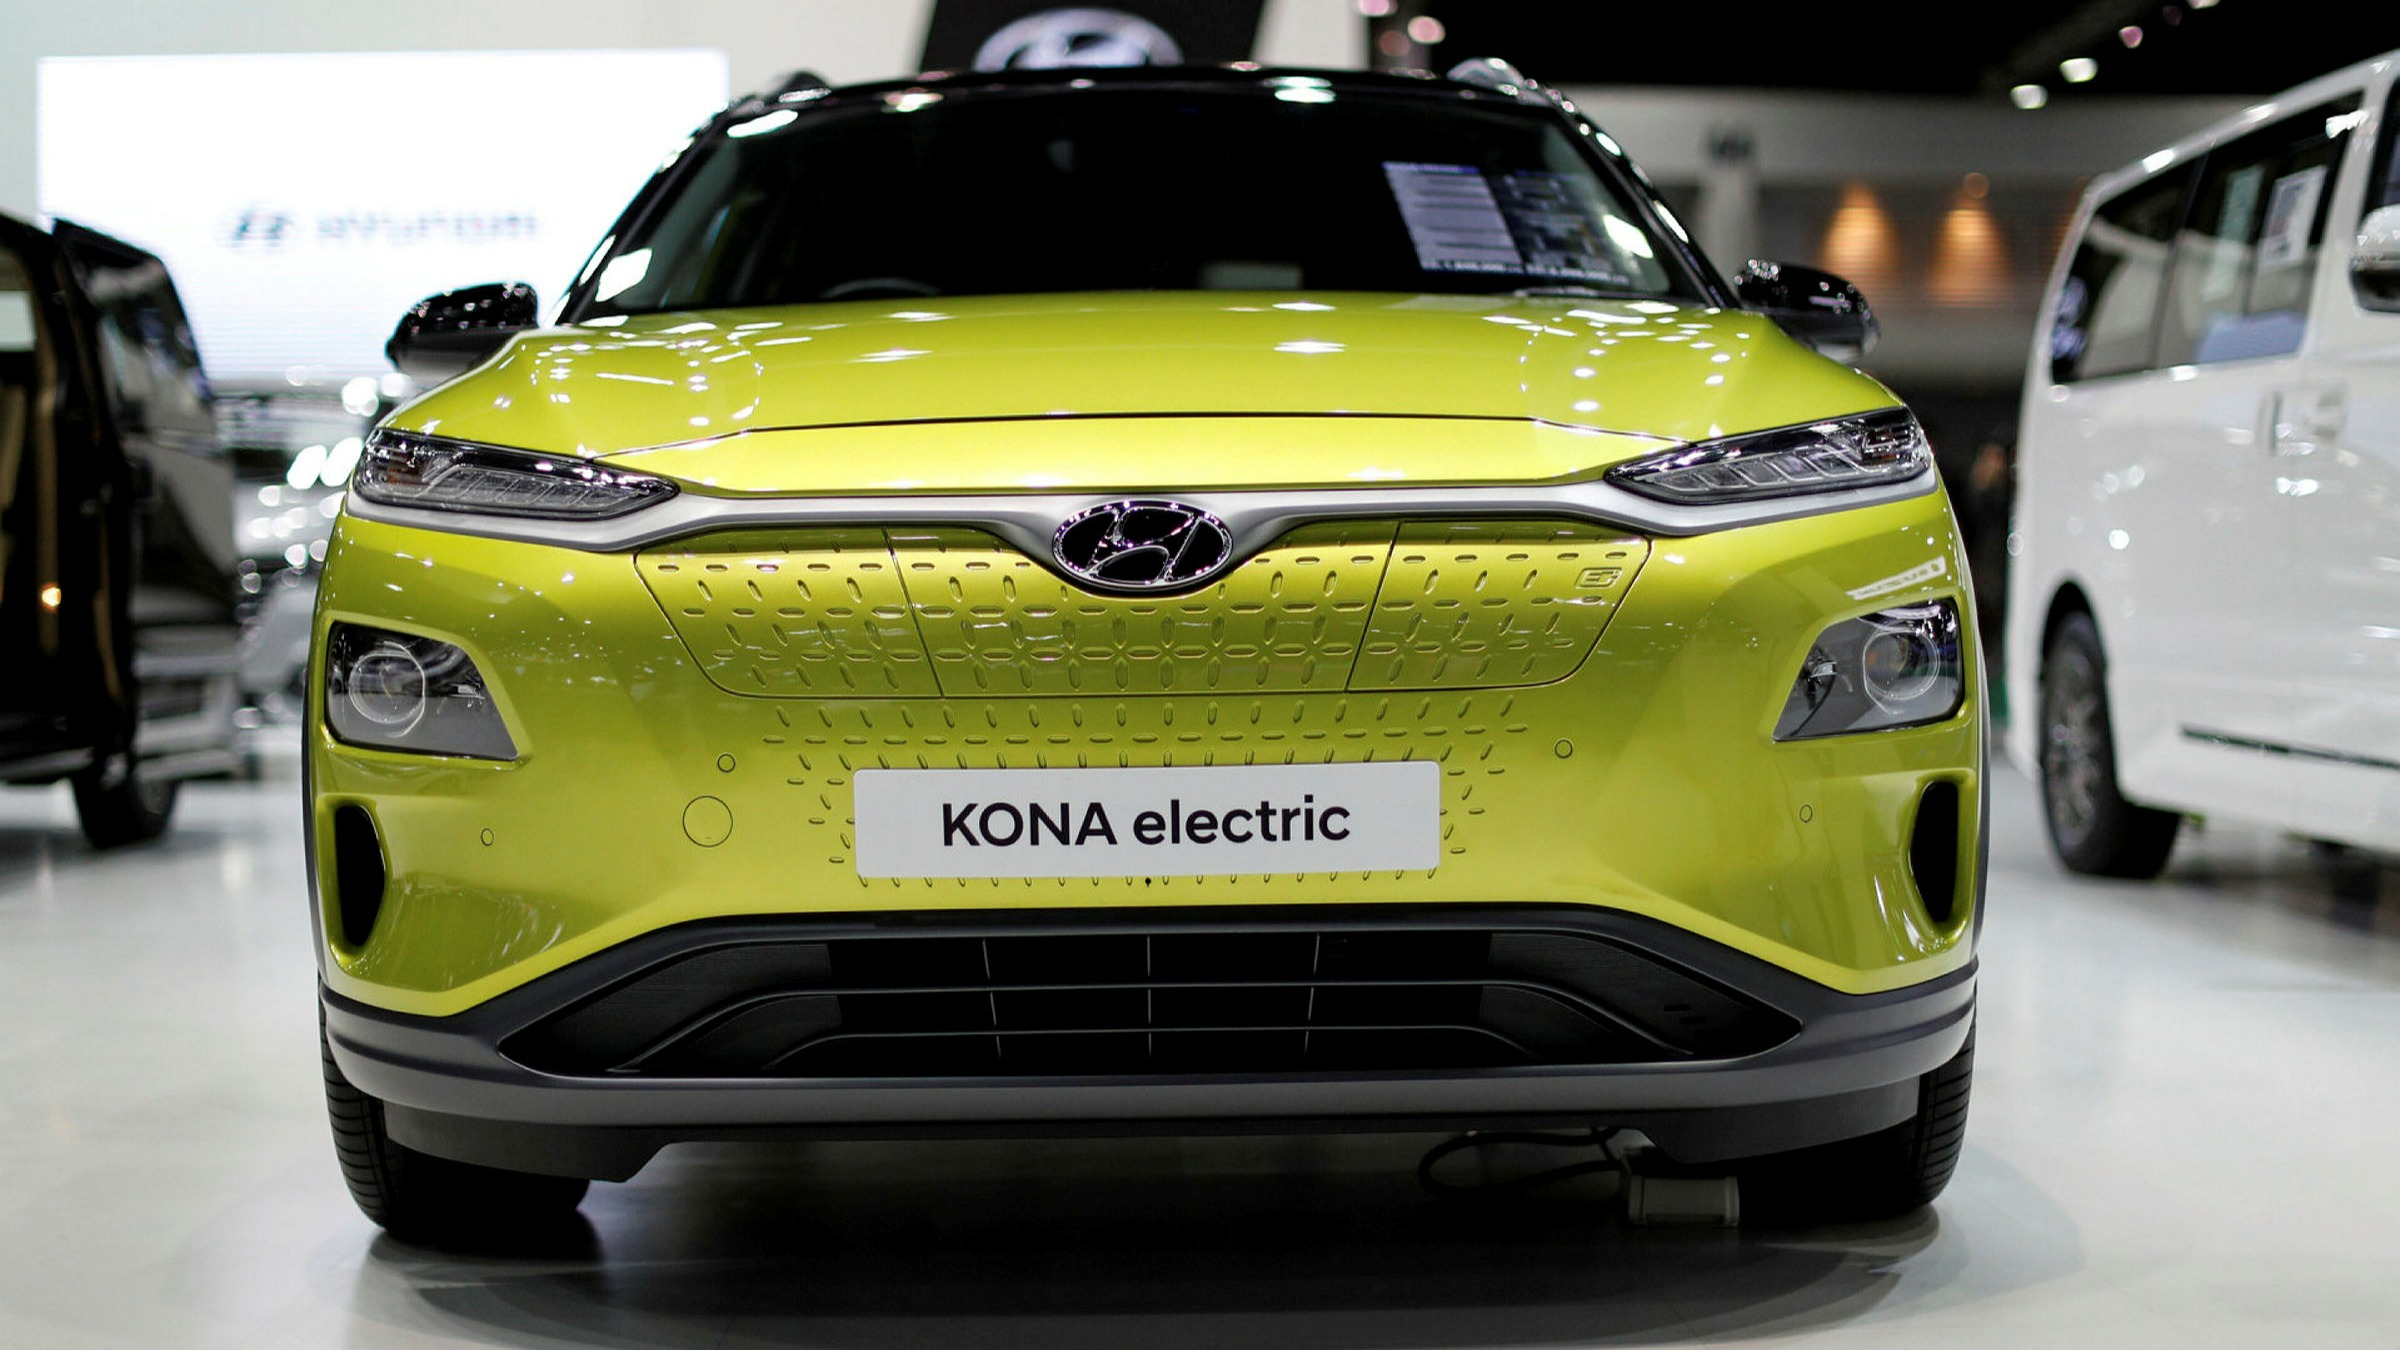 ft.com - Chris Nuttall in London - Electric cars' bumpy ride